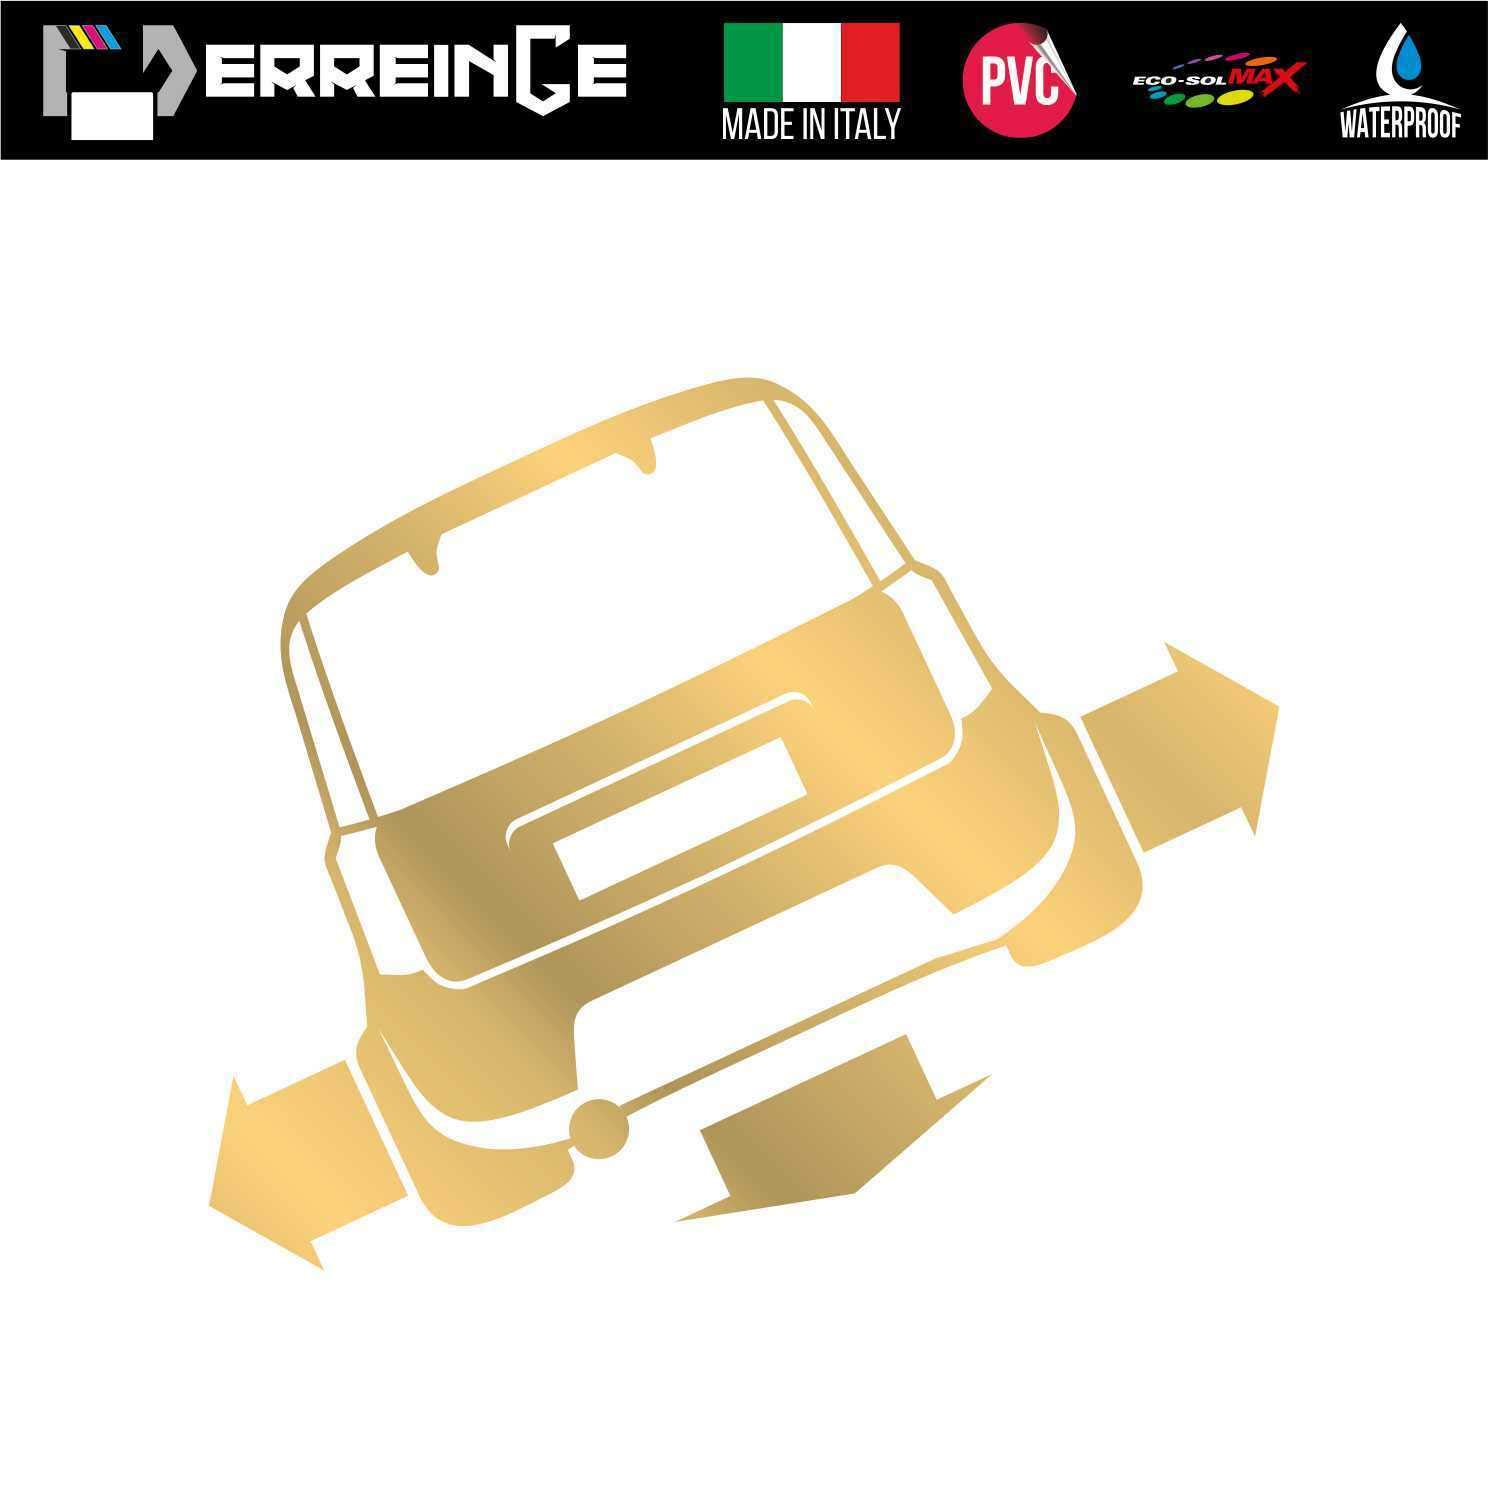 cm 12 ERREINGE Sticker compatibile per FIAT 500 DOWN OUT DUB JDM TUNING BIANCO Adesivo prespaziato in PVC per Auto Lunotto Finestrino